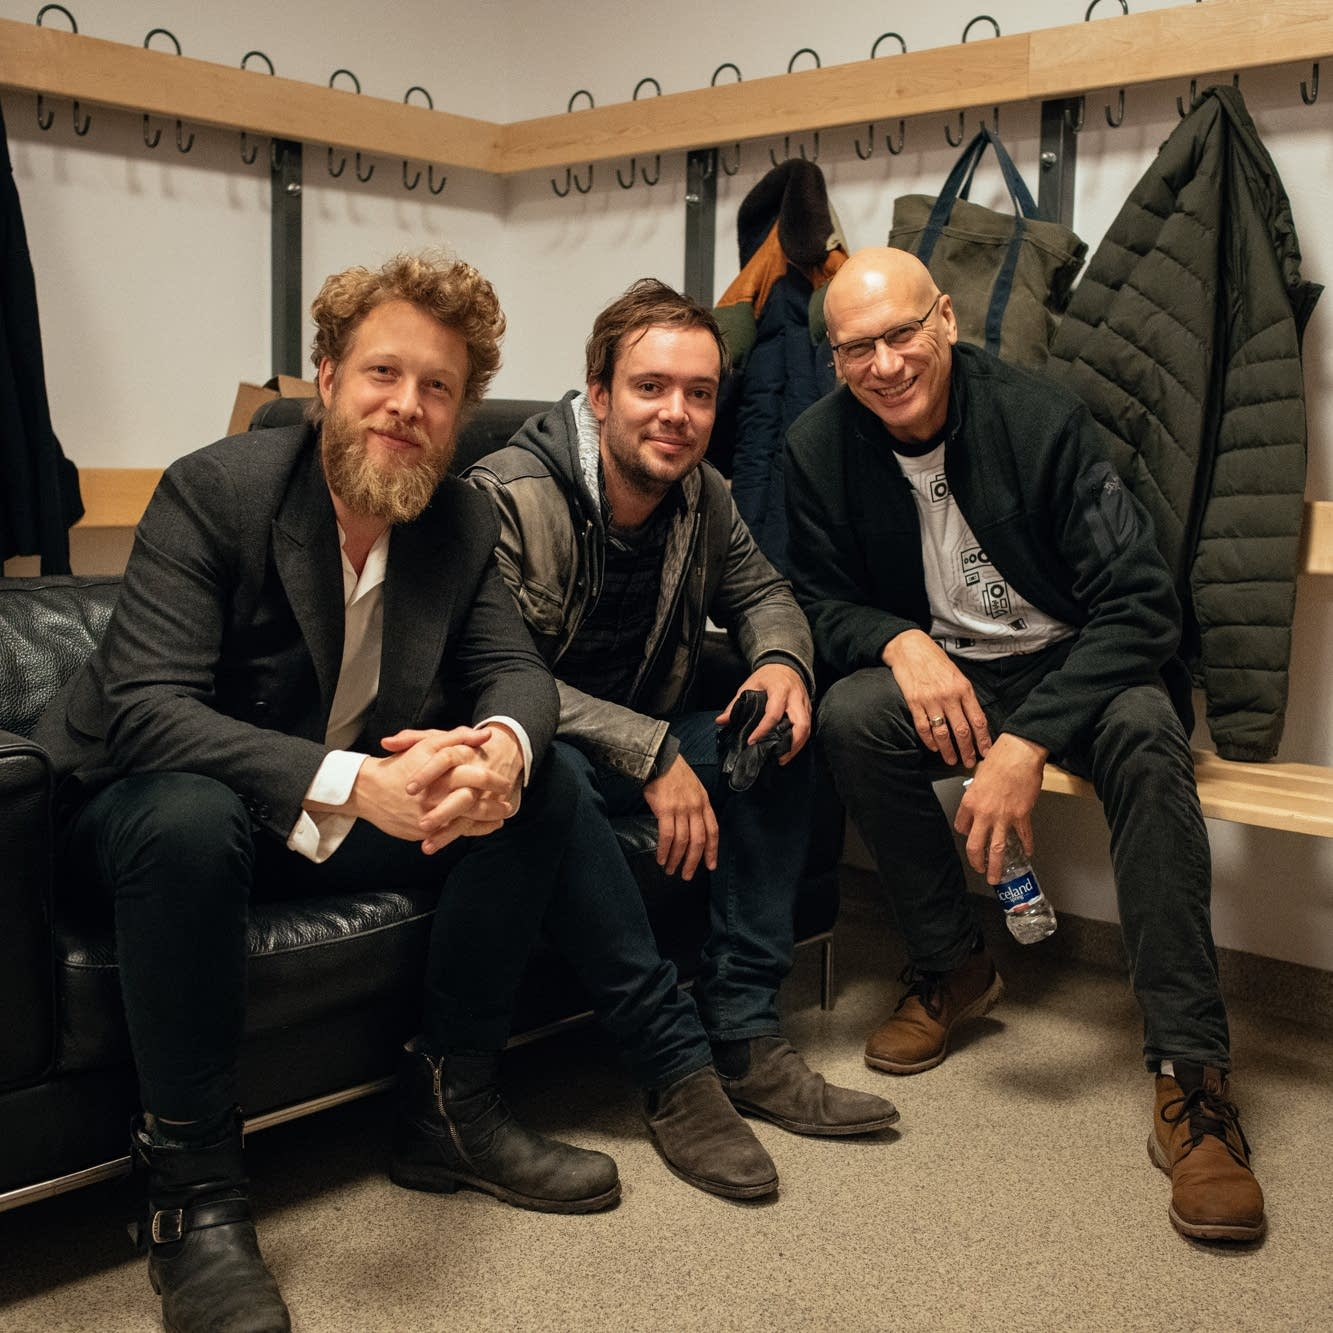 Meeting with Ted Dwane and Ben Lovett of Mumford & Sons in Iceland